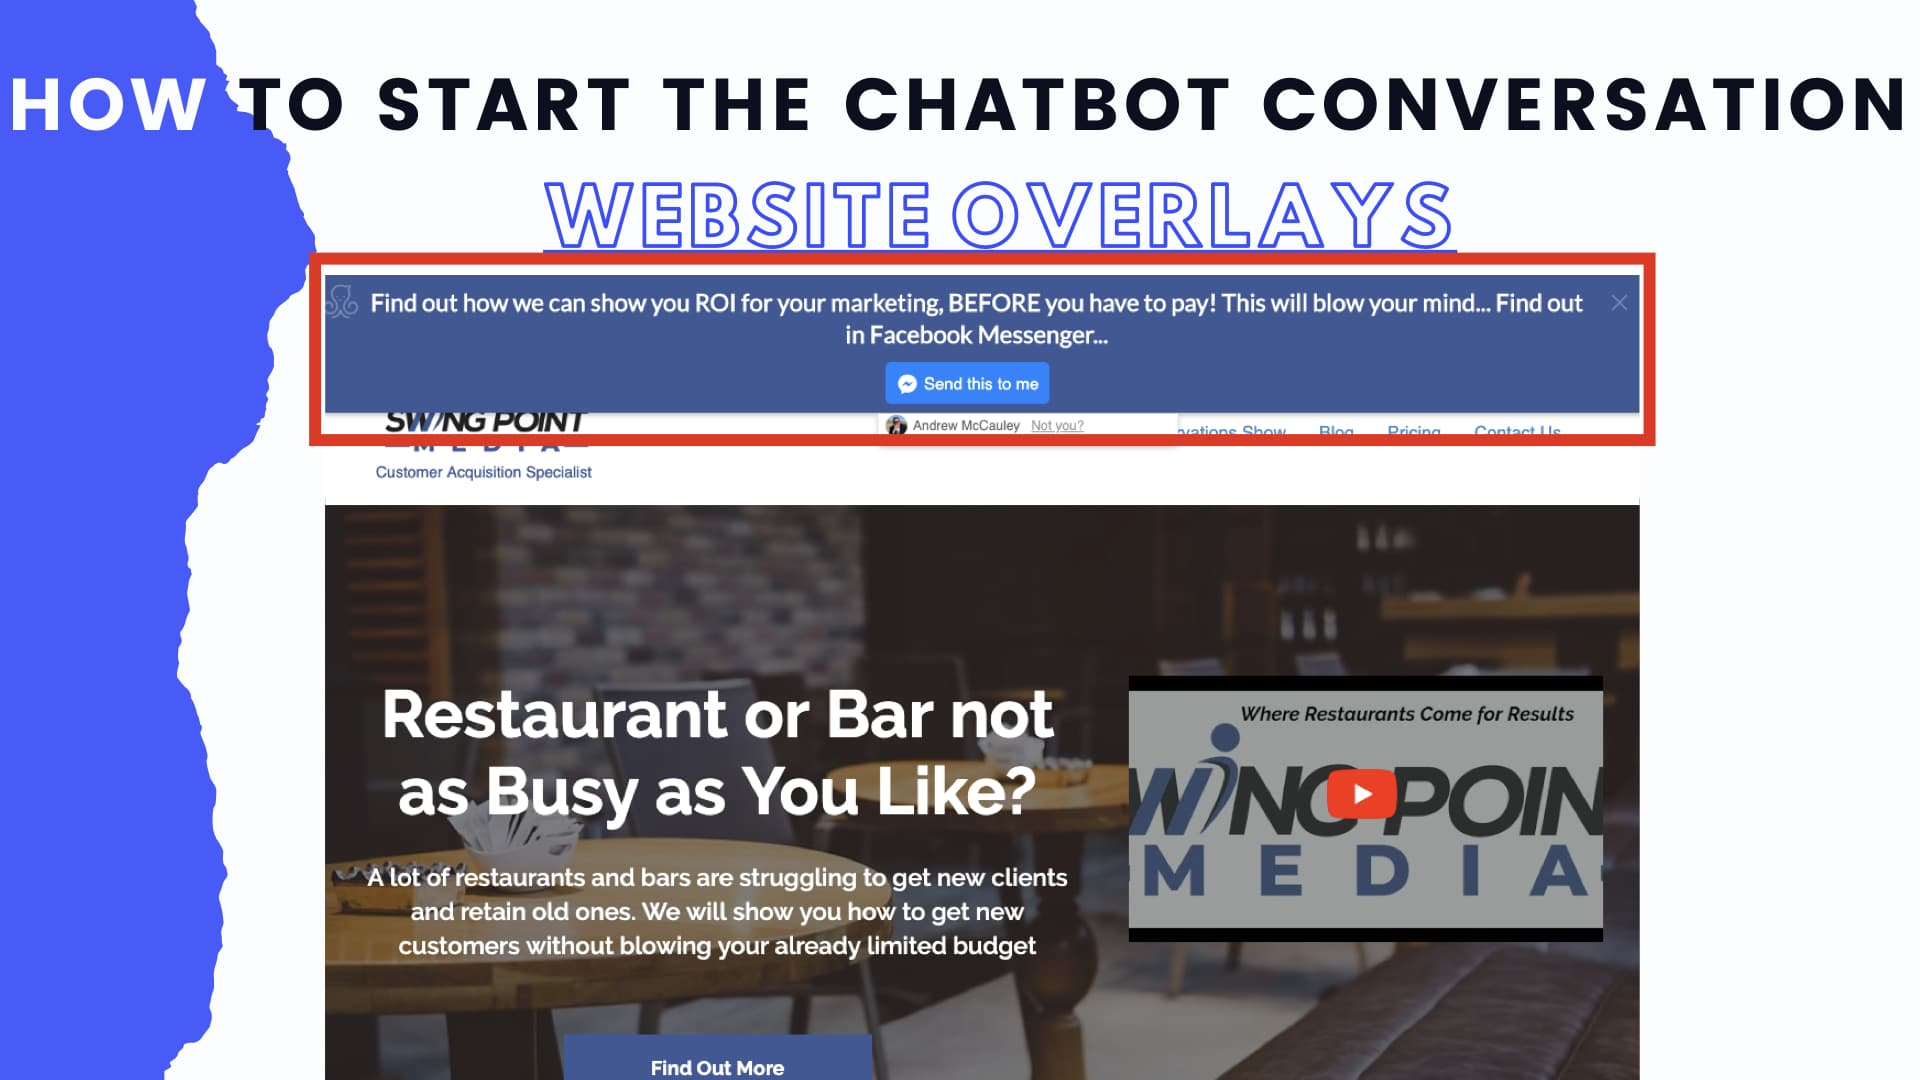 How to get the Chatbot started from your website